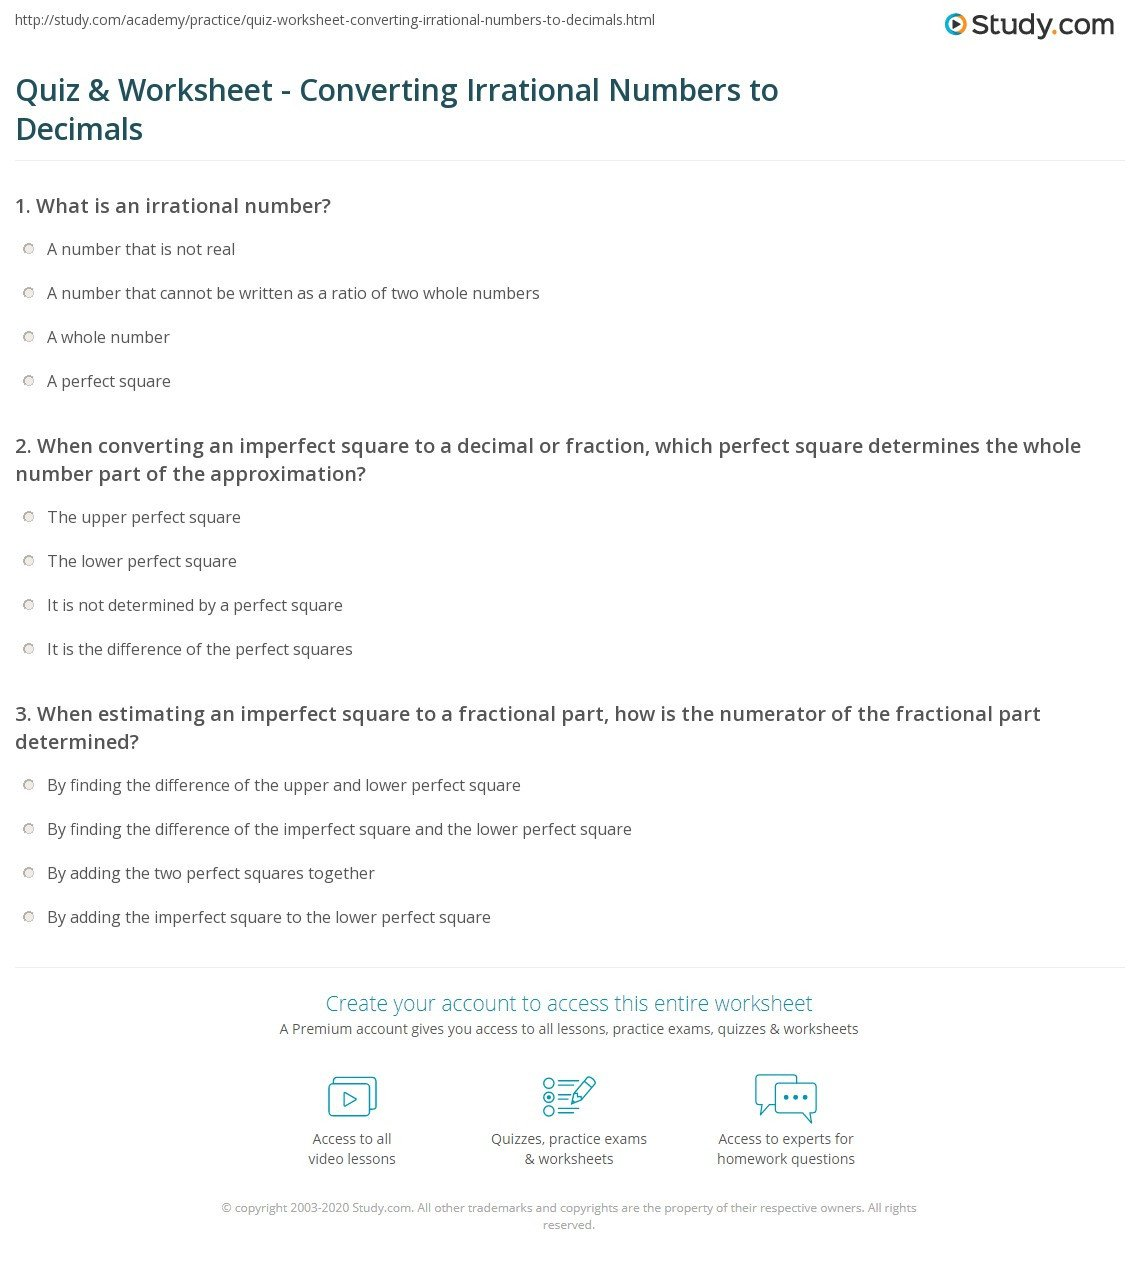 Estimating Irrational Numbers Worksheet Quiz & Worksheet Converting Irrational Numbers to Decimals